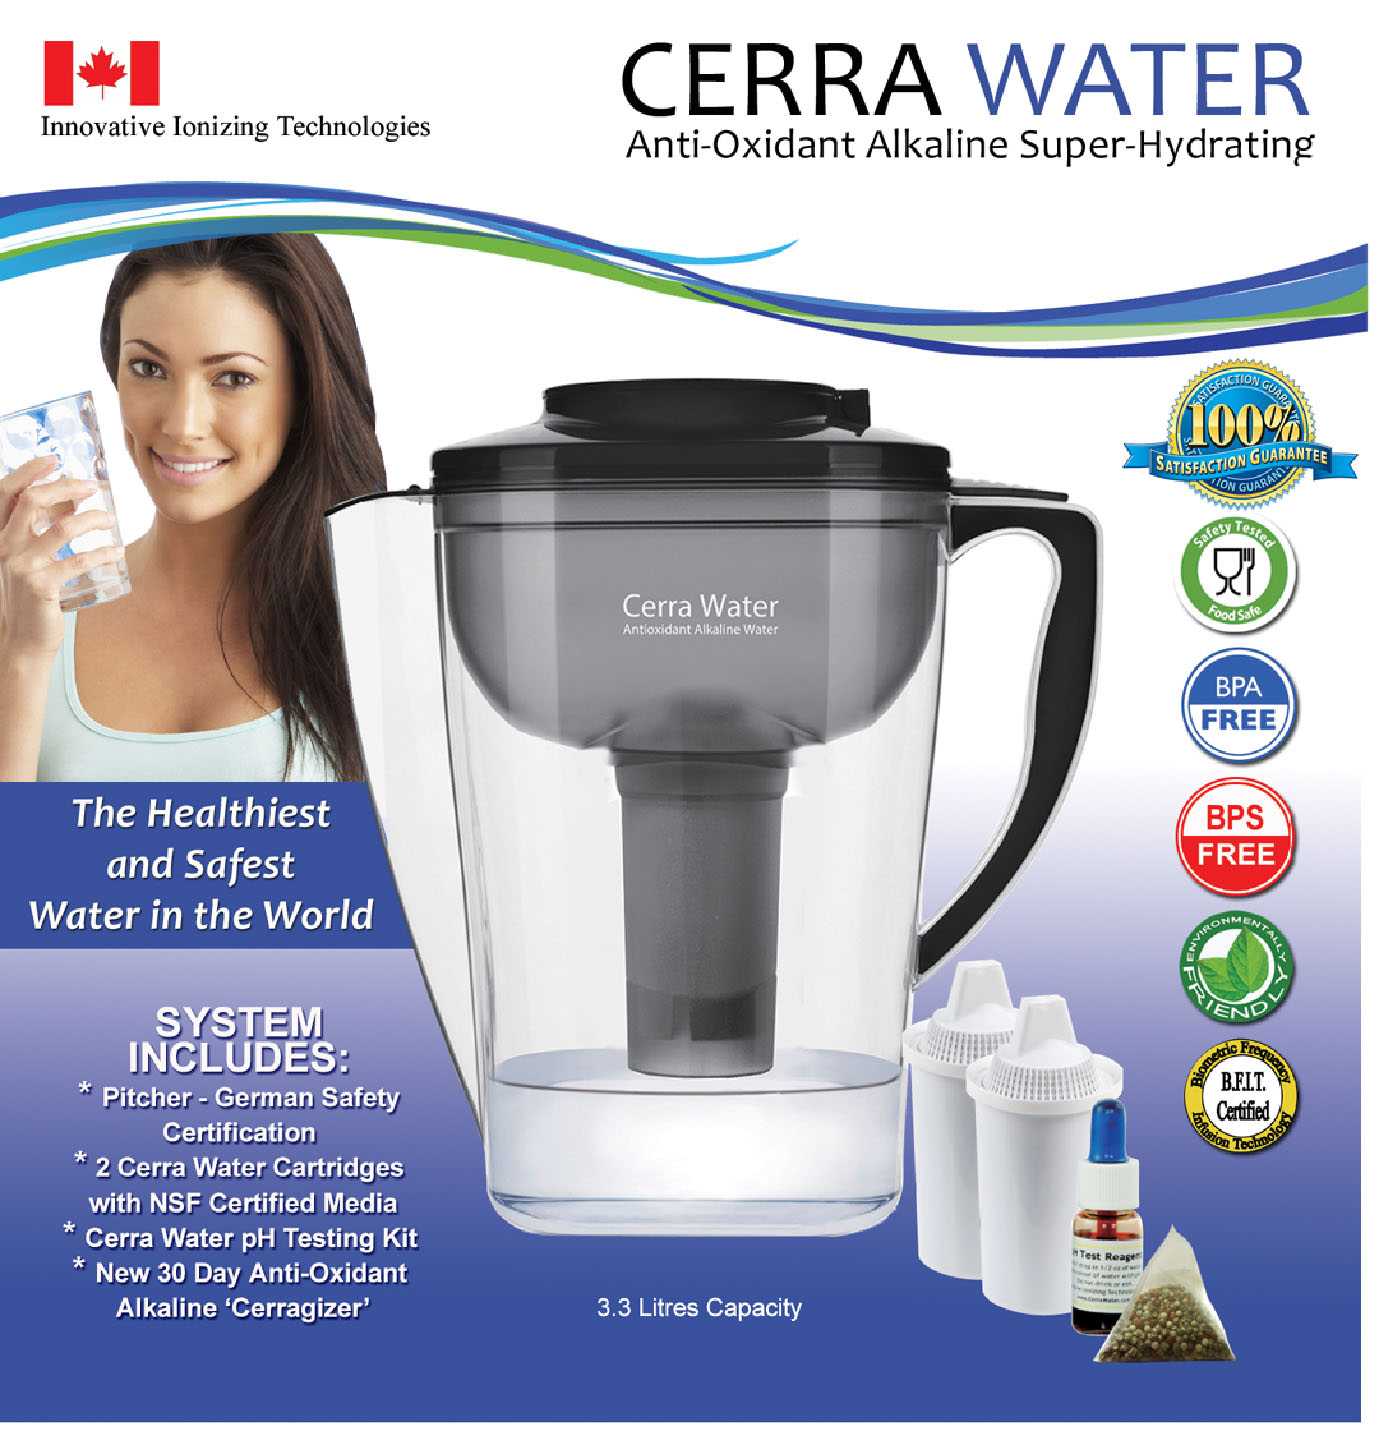 20 Cerra Water Pitchers